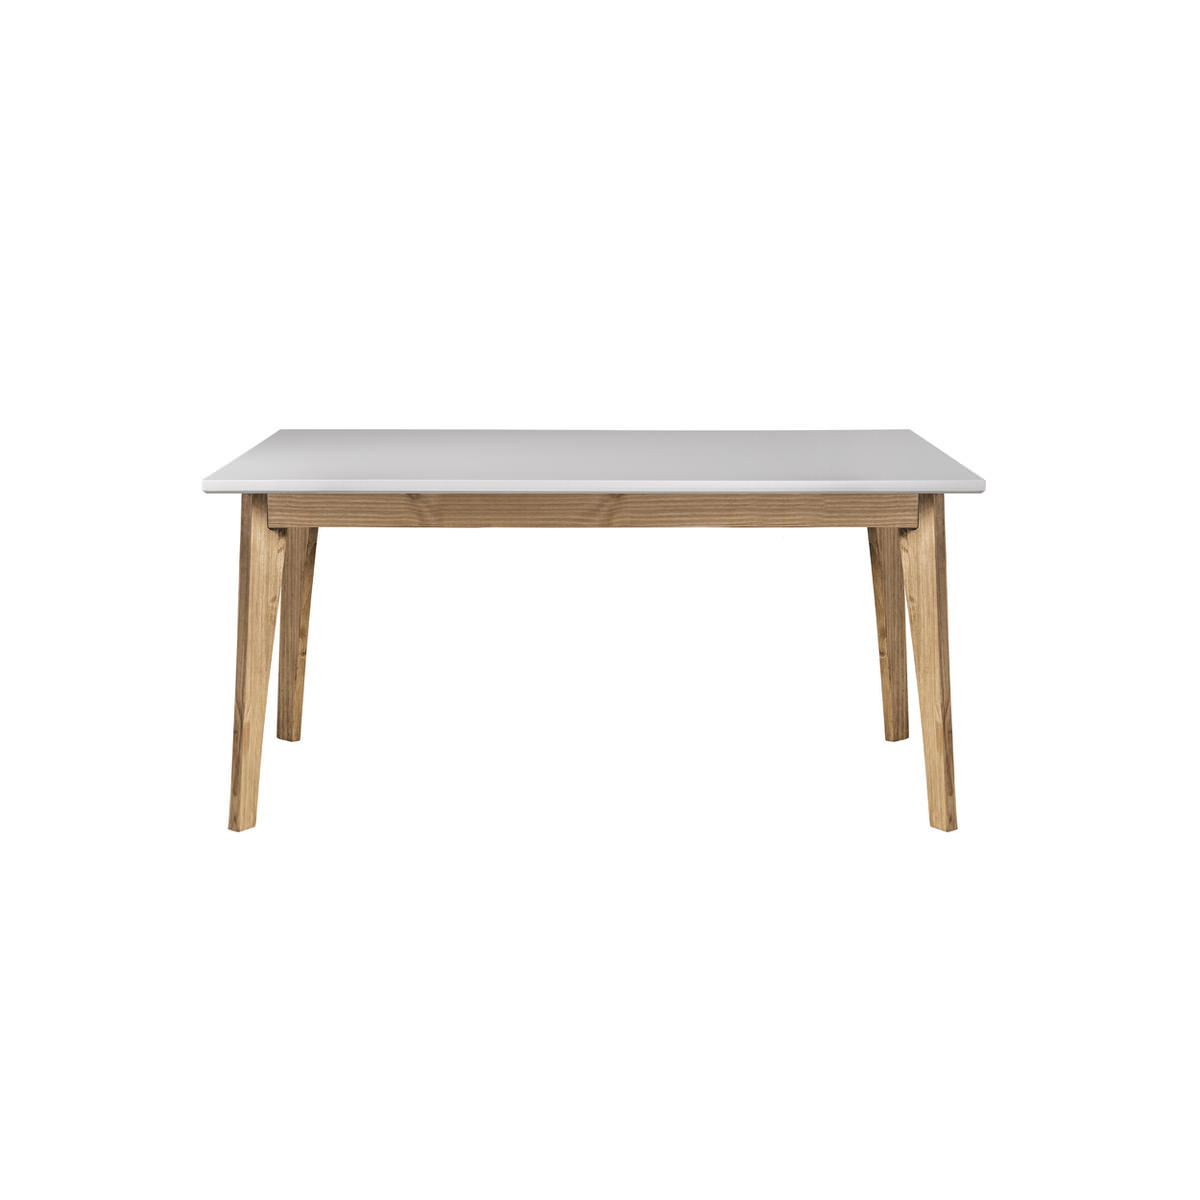 Rustic Mid Century Modern 6 Seating Dining Tables In White And Natural Wood Within Newest Rustic Mid Century Modern Jackie 6 Seating White & Natural Wood Dining  Tablemanhattan Comfort (View 26 of 30)